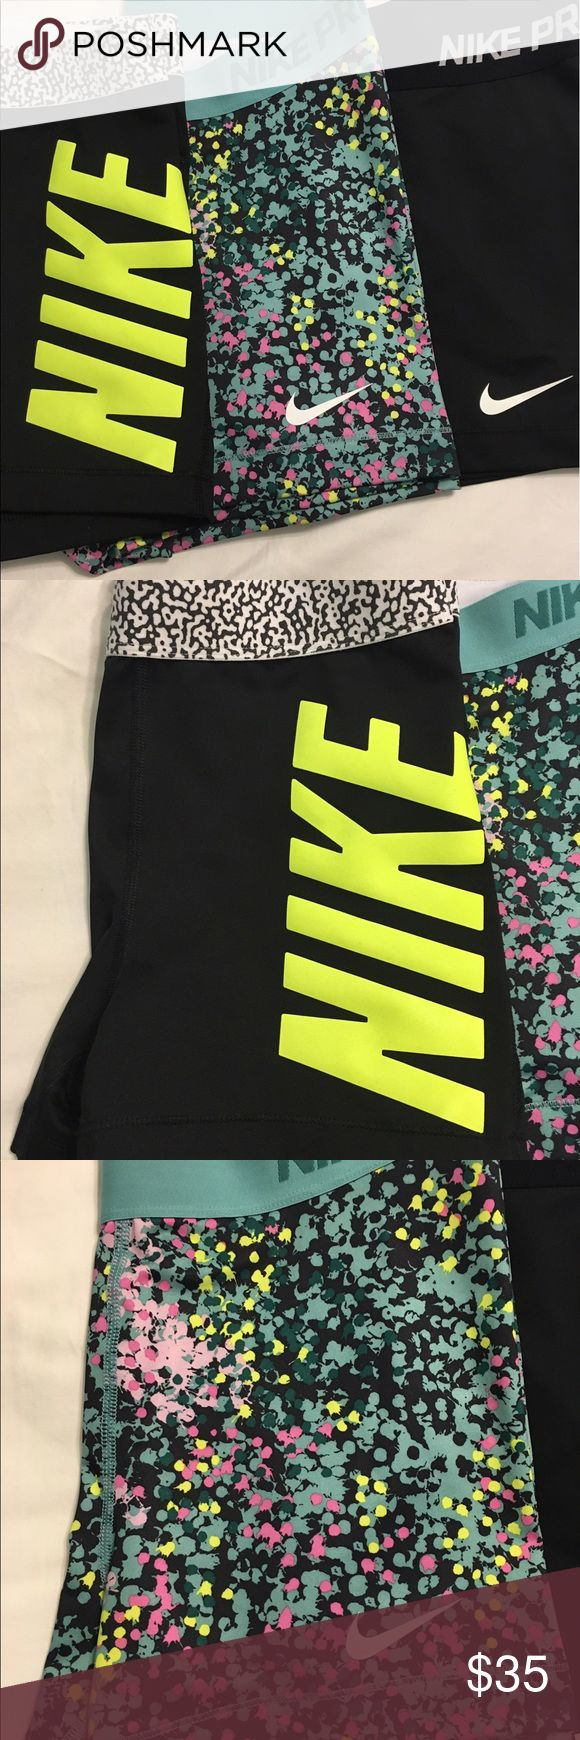 Nike Pro Women's Fitted Athletic Shorts 3 pair of barely worn (1-2 times) Nike Pro fitted athletic shorts.  Bundled.  No peeling of logos or built in tags. Non smoking home. Sold as bundle. Nike Shorts